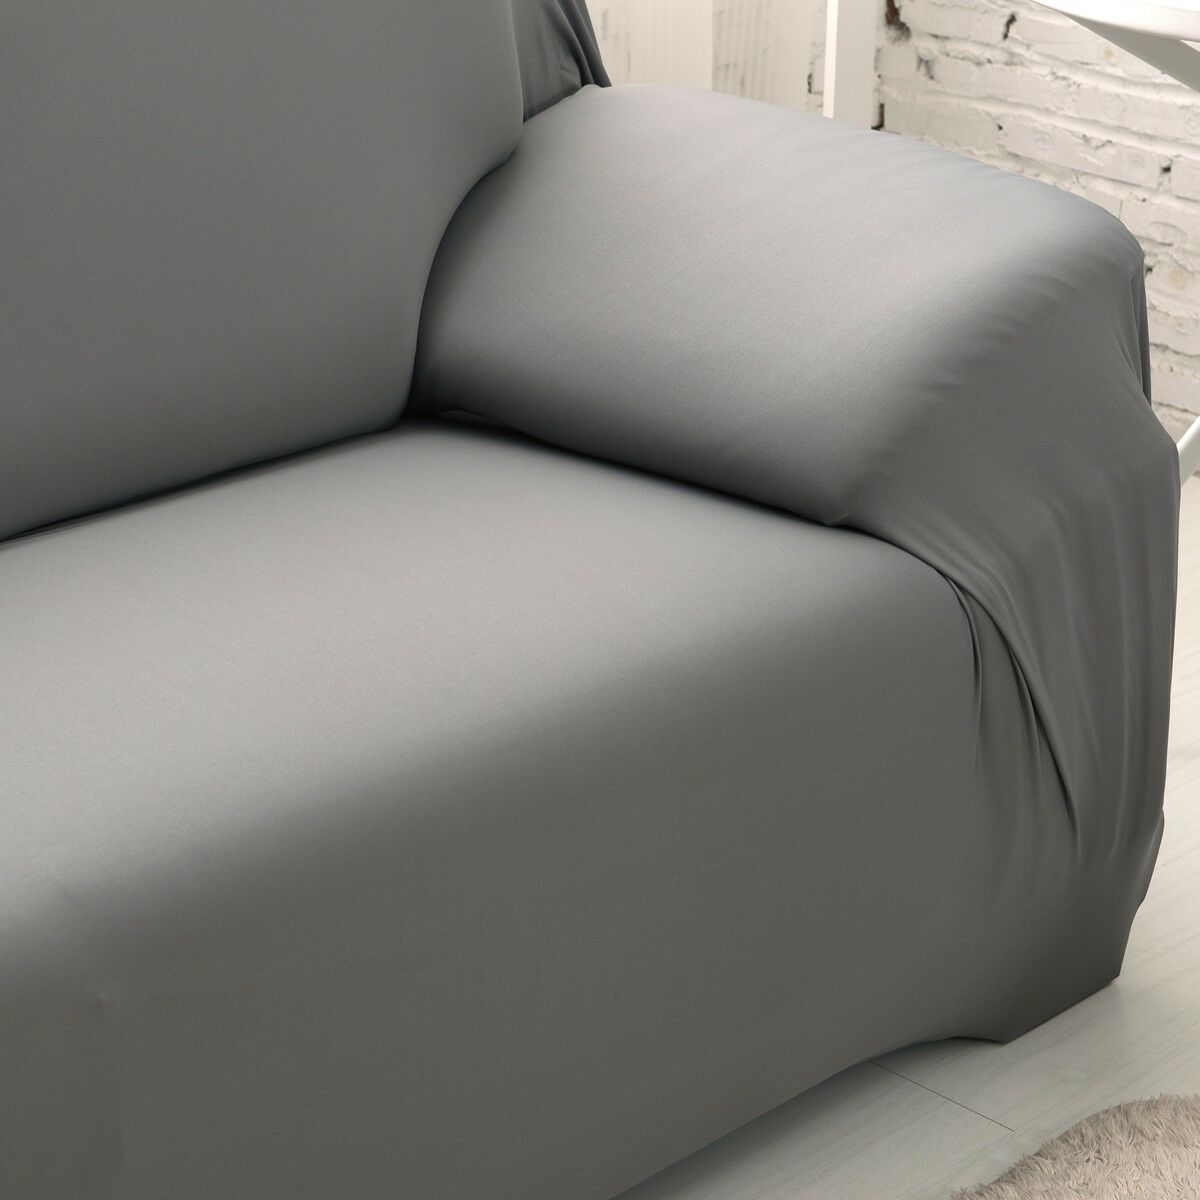 EASY-Stretch-Couch-Sofa-Lounge-Covers-Recliner-1-2-3-Seater-Dining-Chair-Cover thumbnail 78